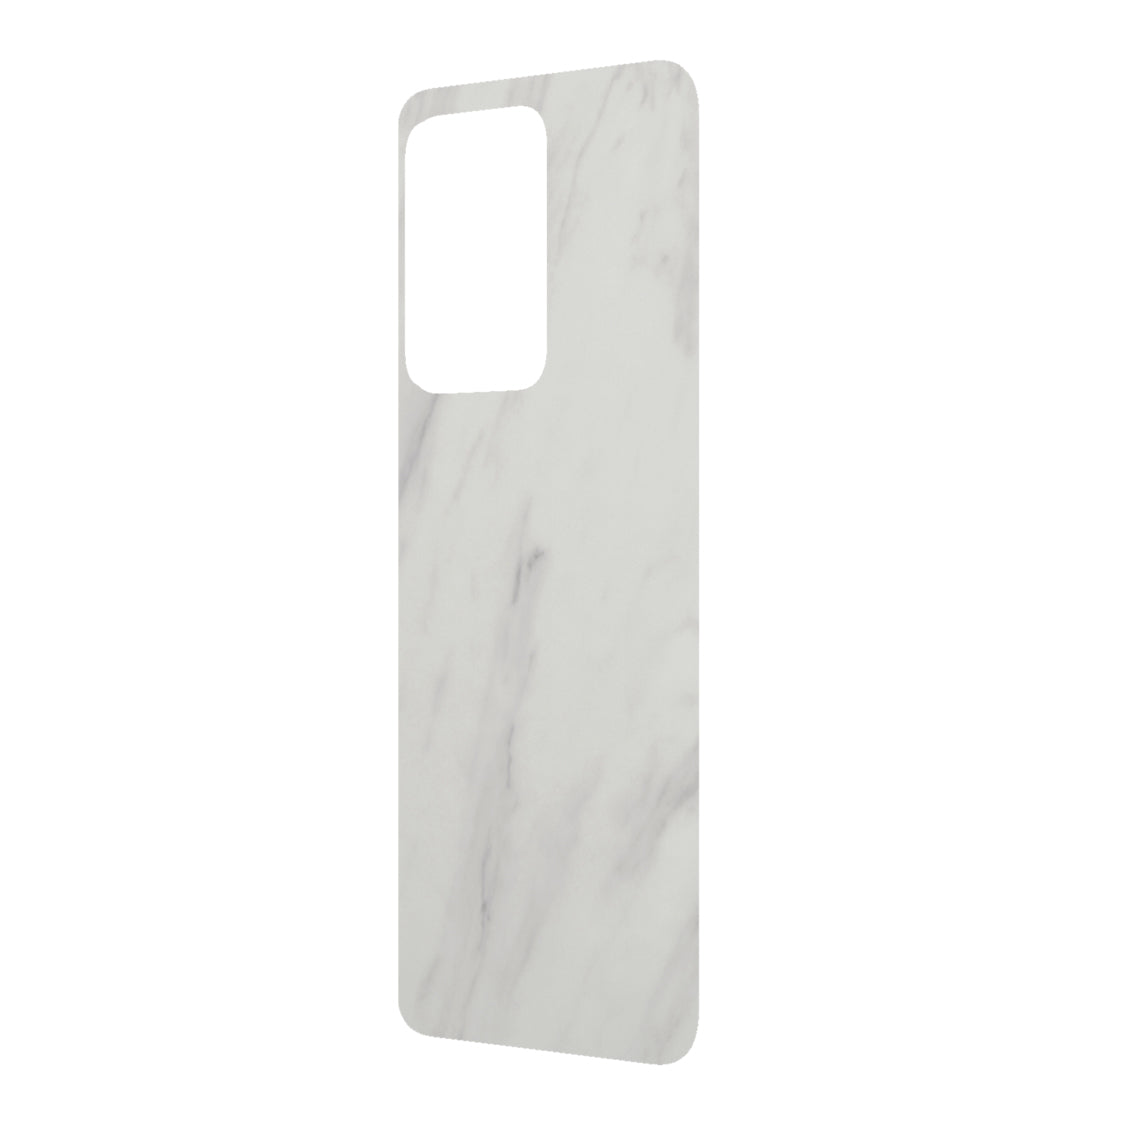 RhinoShield Impact Skin For Samsung S20 Ultra - White Marble - Macintosh Addict